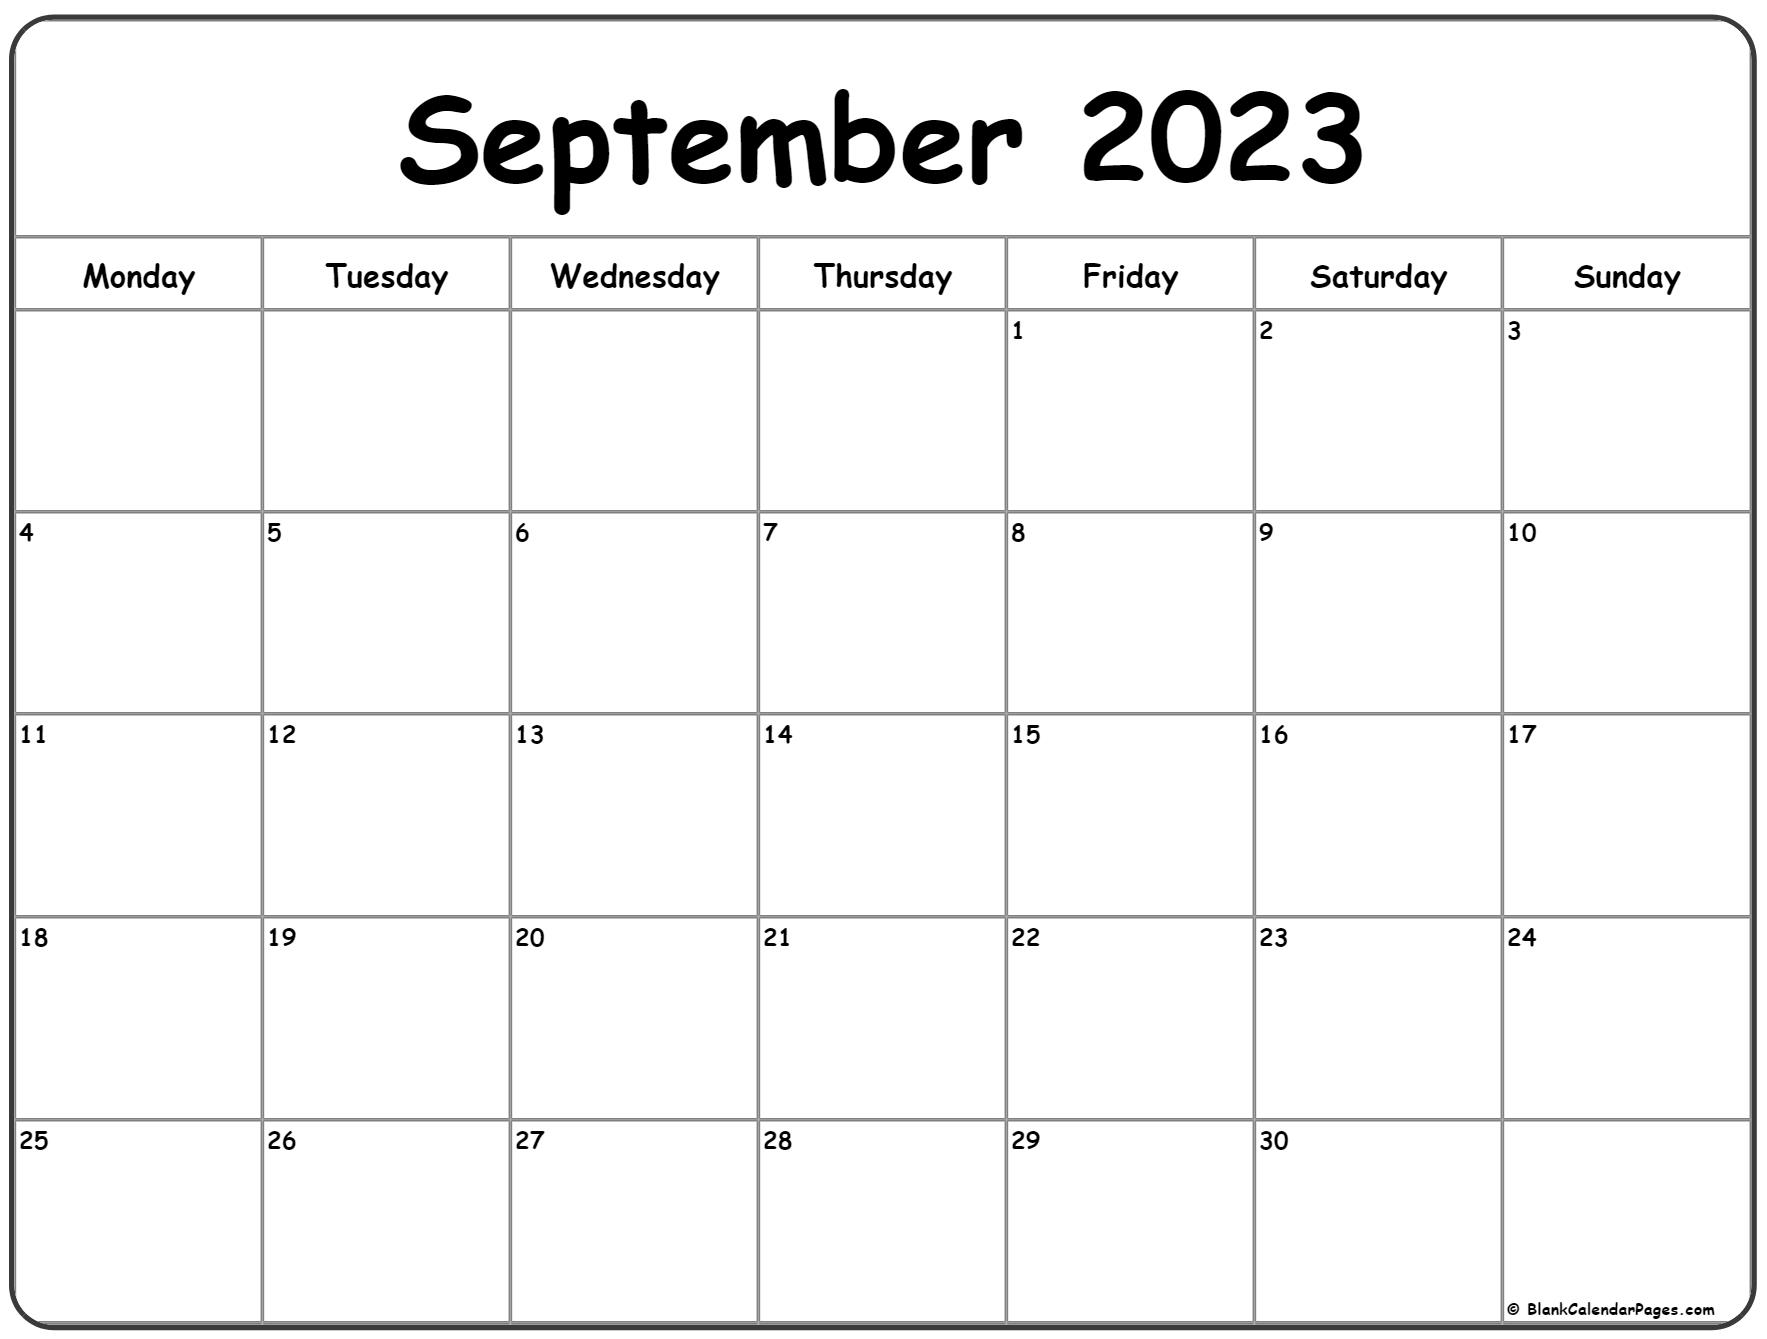 September 2023 Monday calendar. Monday to Sunday